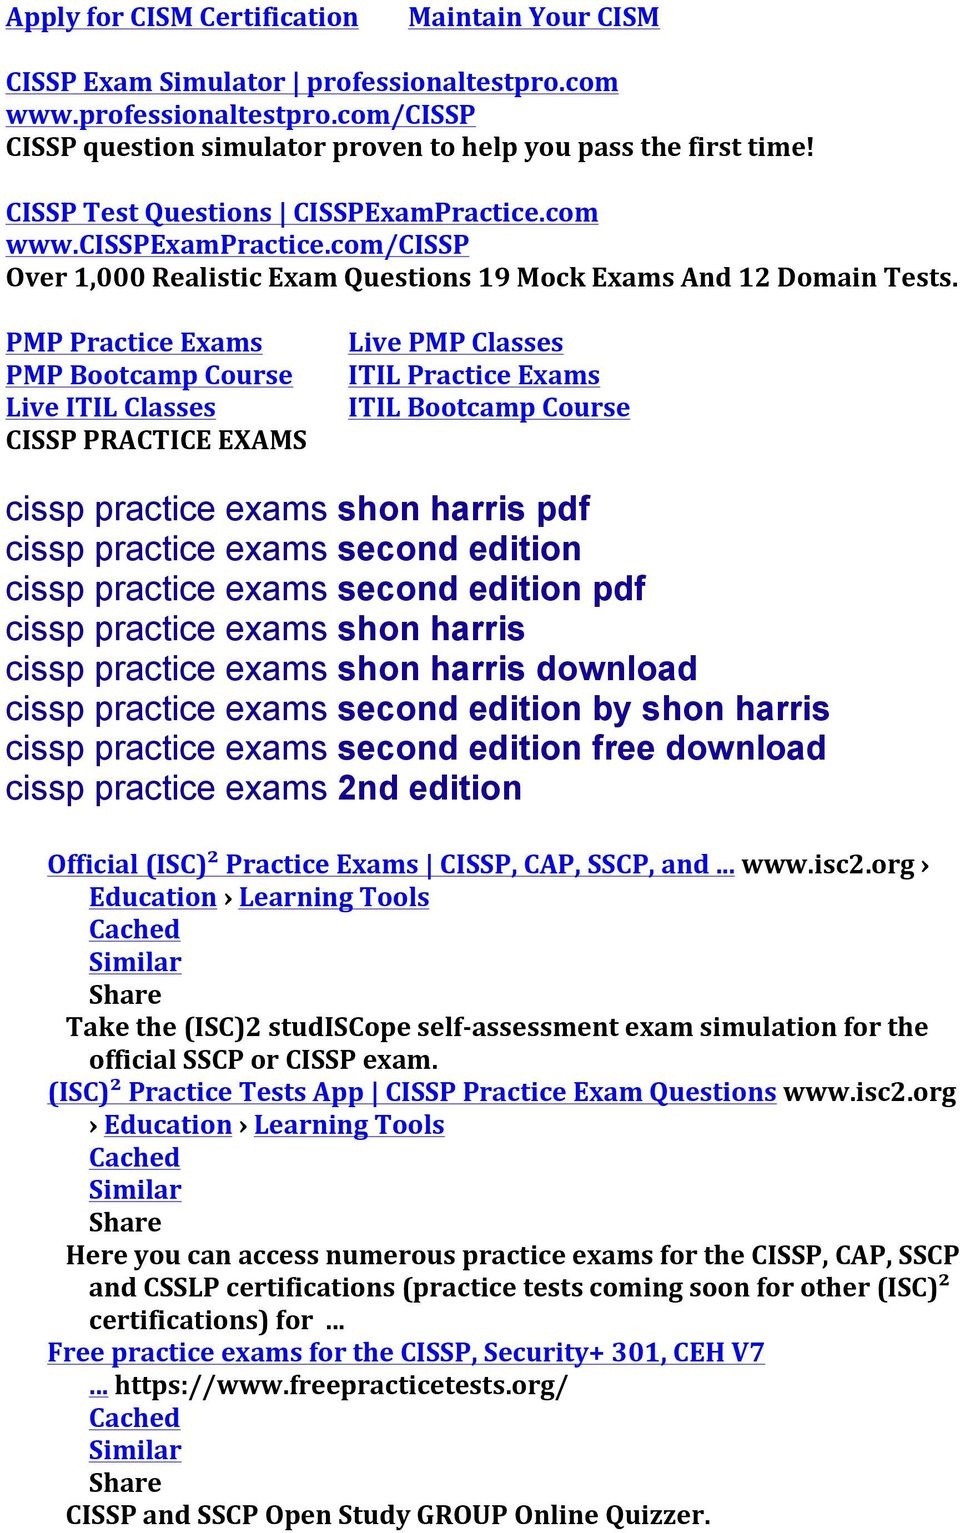 Cissp Exam Simulator Professionaltestpro Sample Cissp